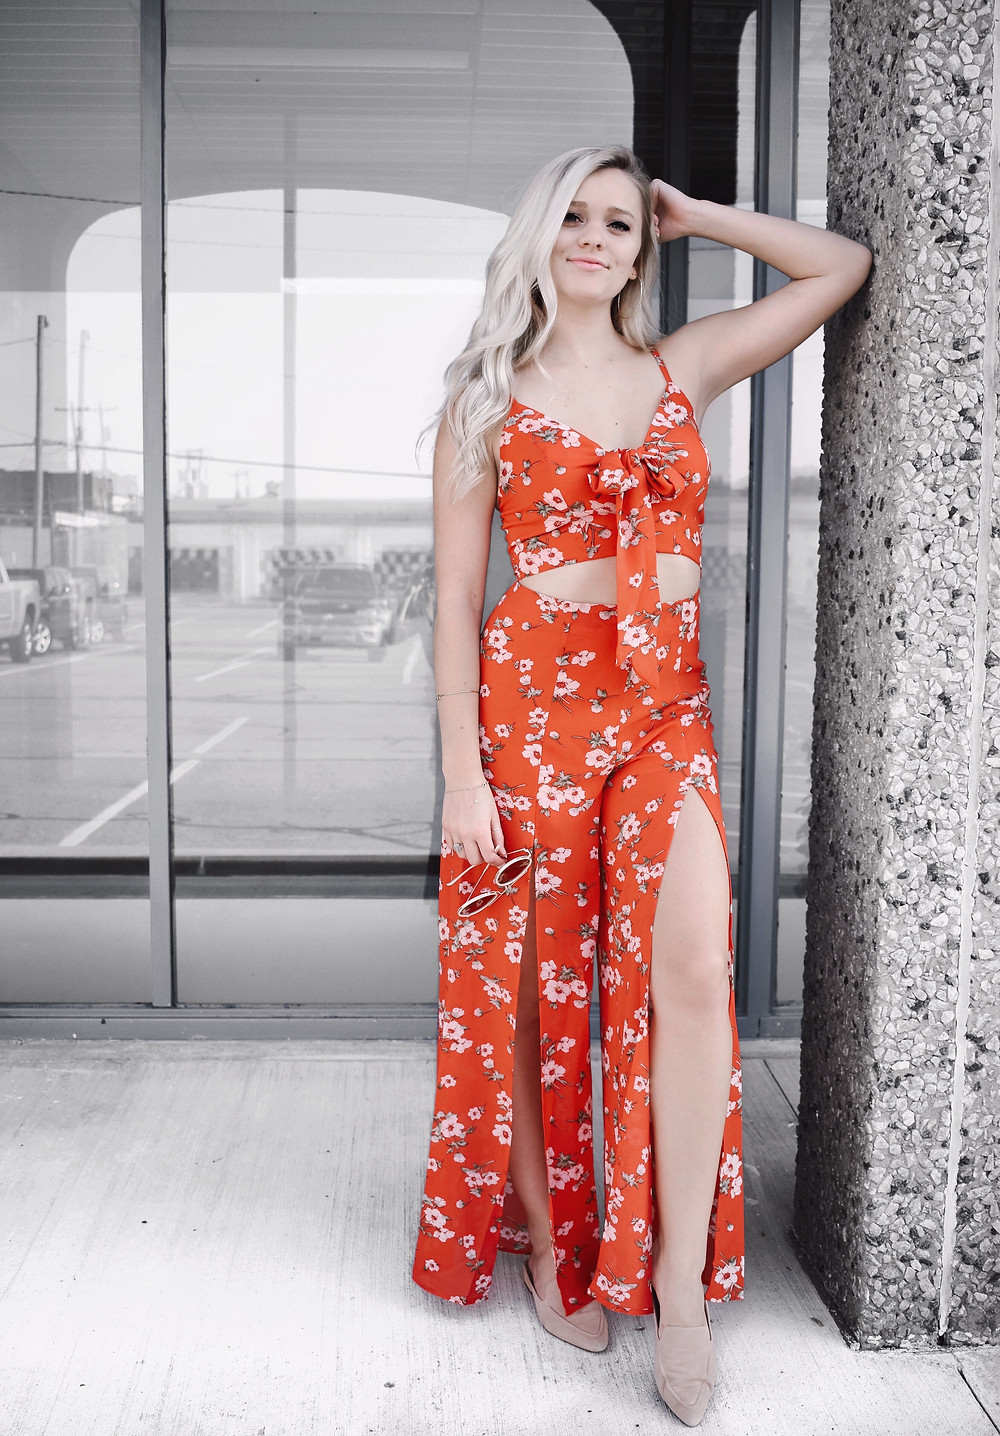 Red Outfit from Honeybum Styled by Caitlin Eliza